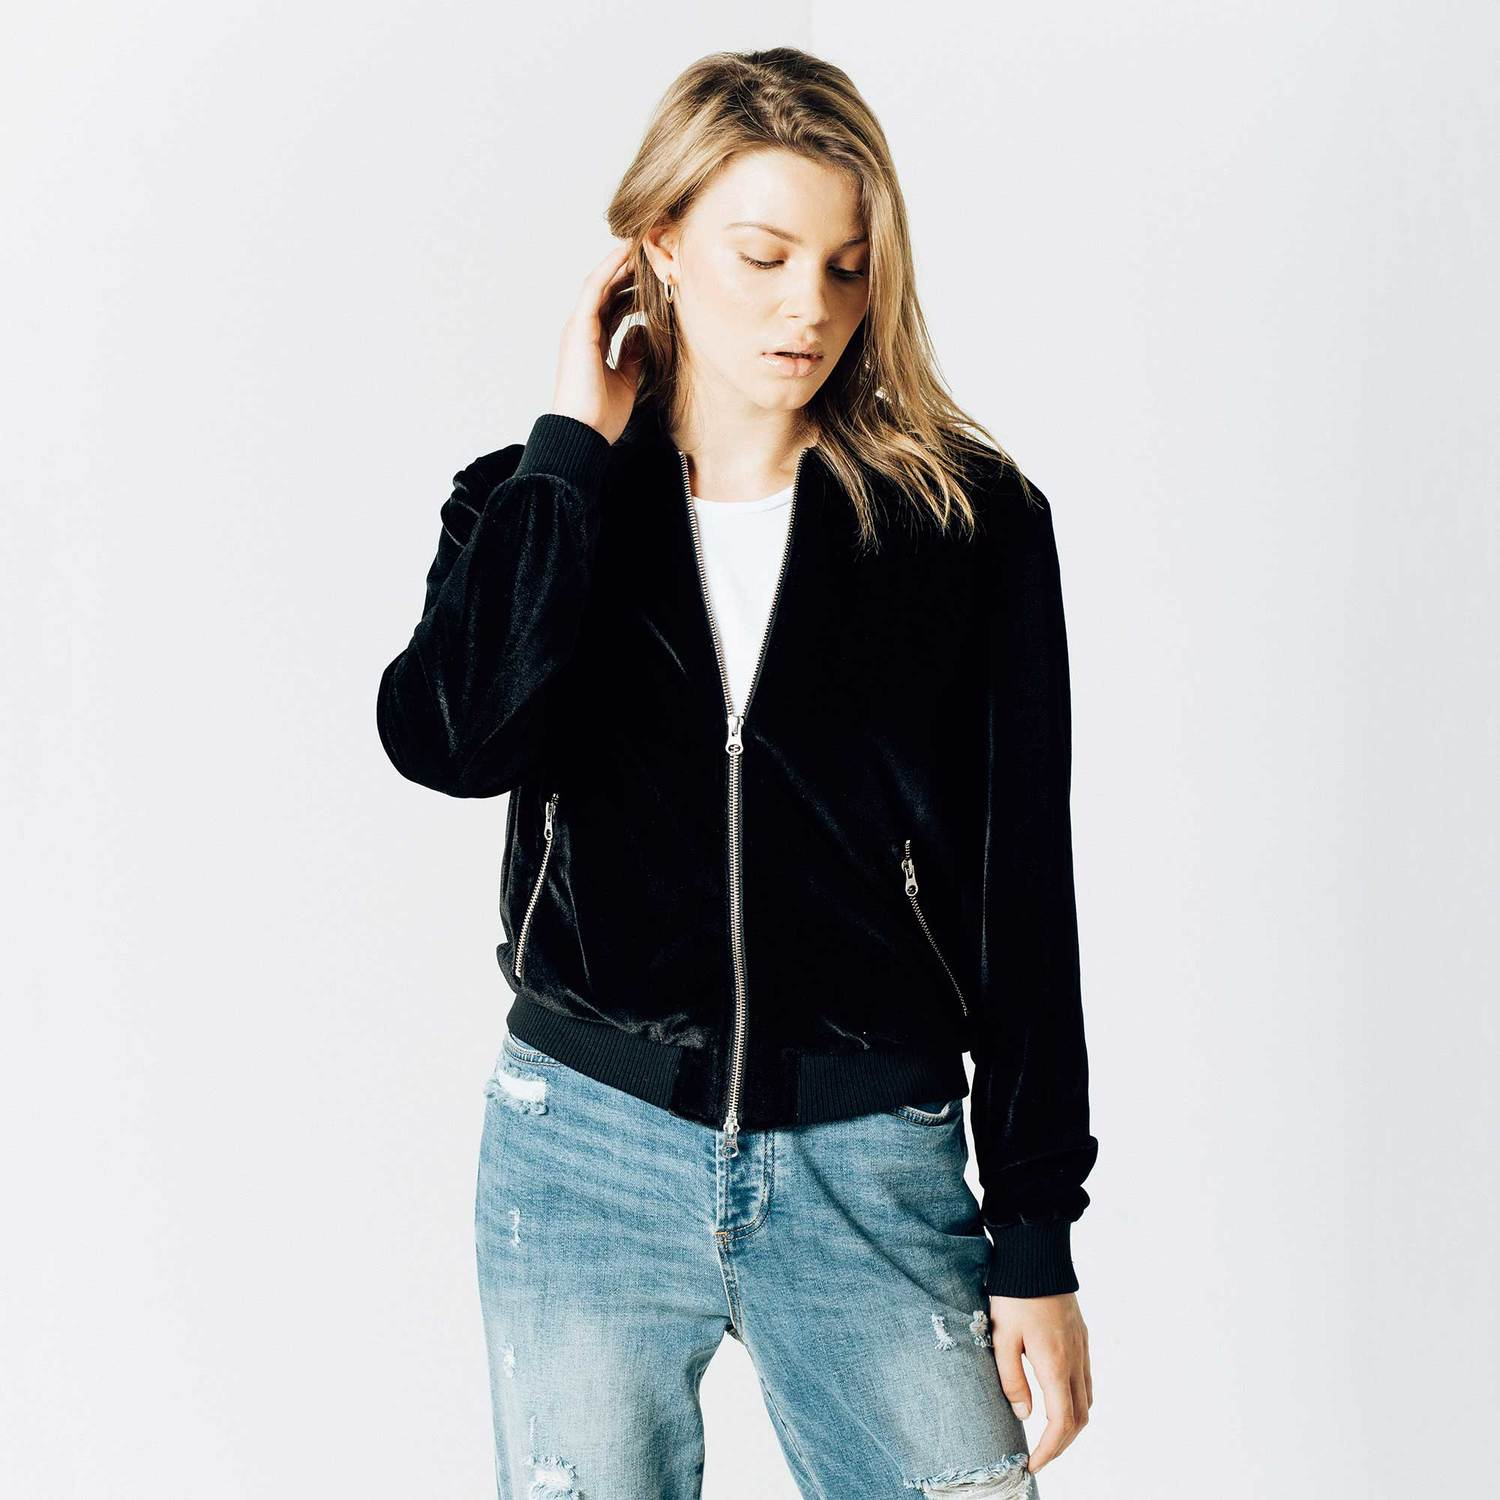 Shop for velvet jacket womens online at Target. Free shipping on purchases over $35 and save 5% every day with your Target REDcard.